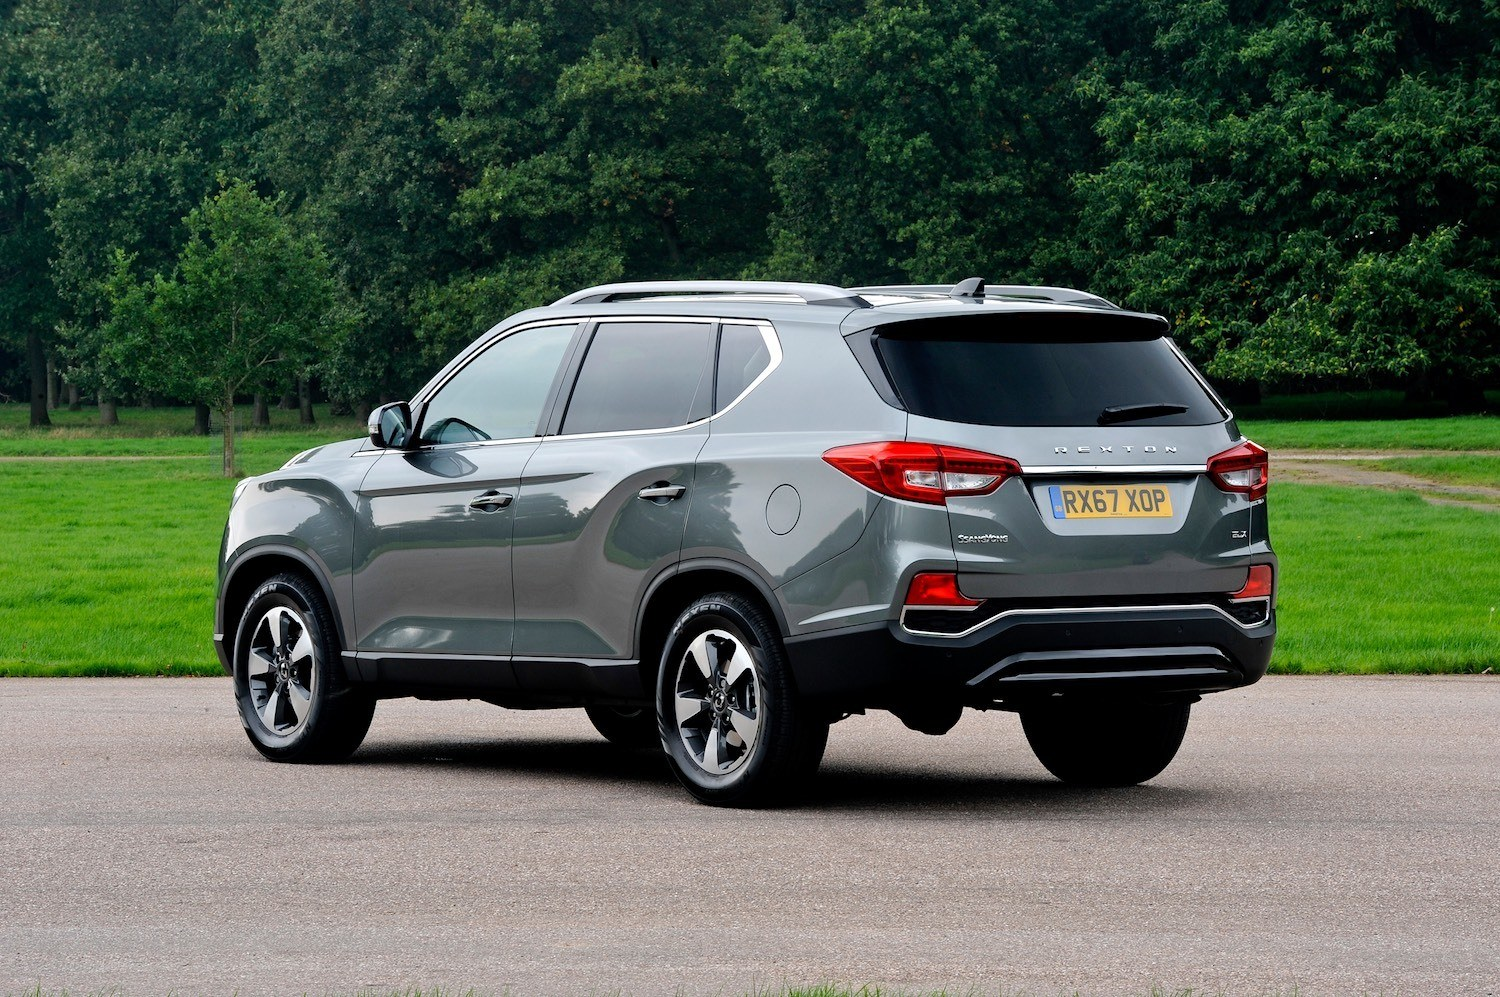 Tom Scanlan reviews the All-New SsangYong Rexton Ultimate 4×4 for Drive 9